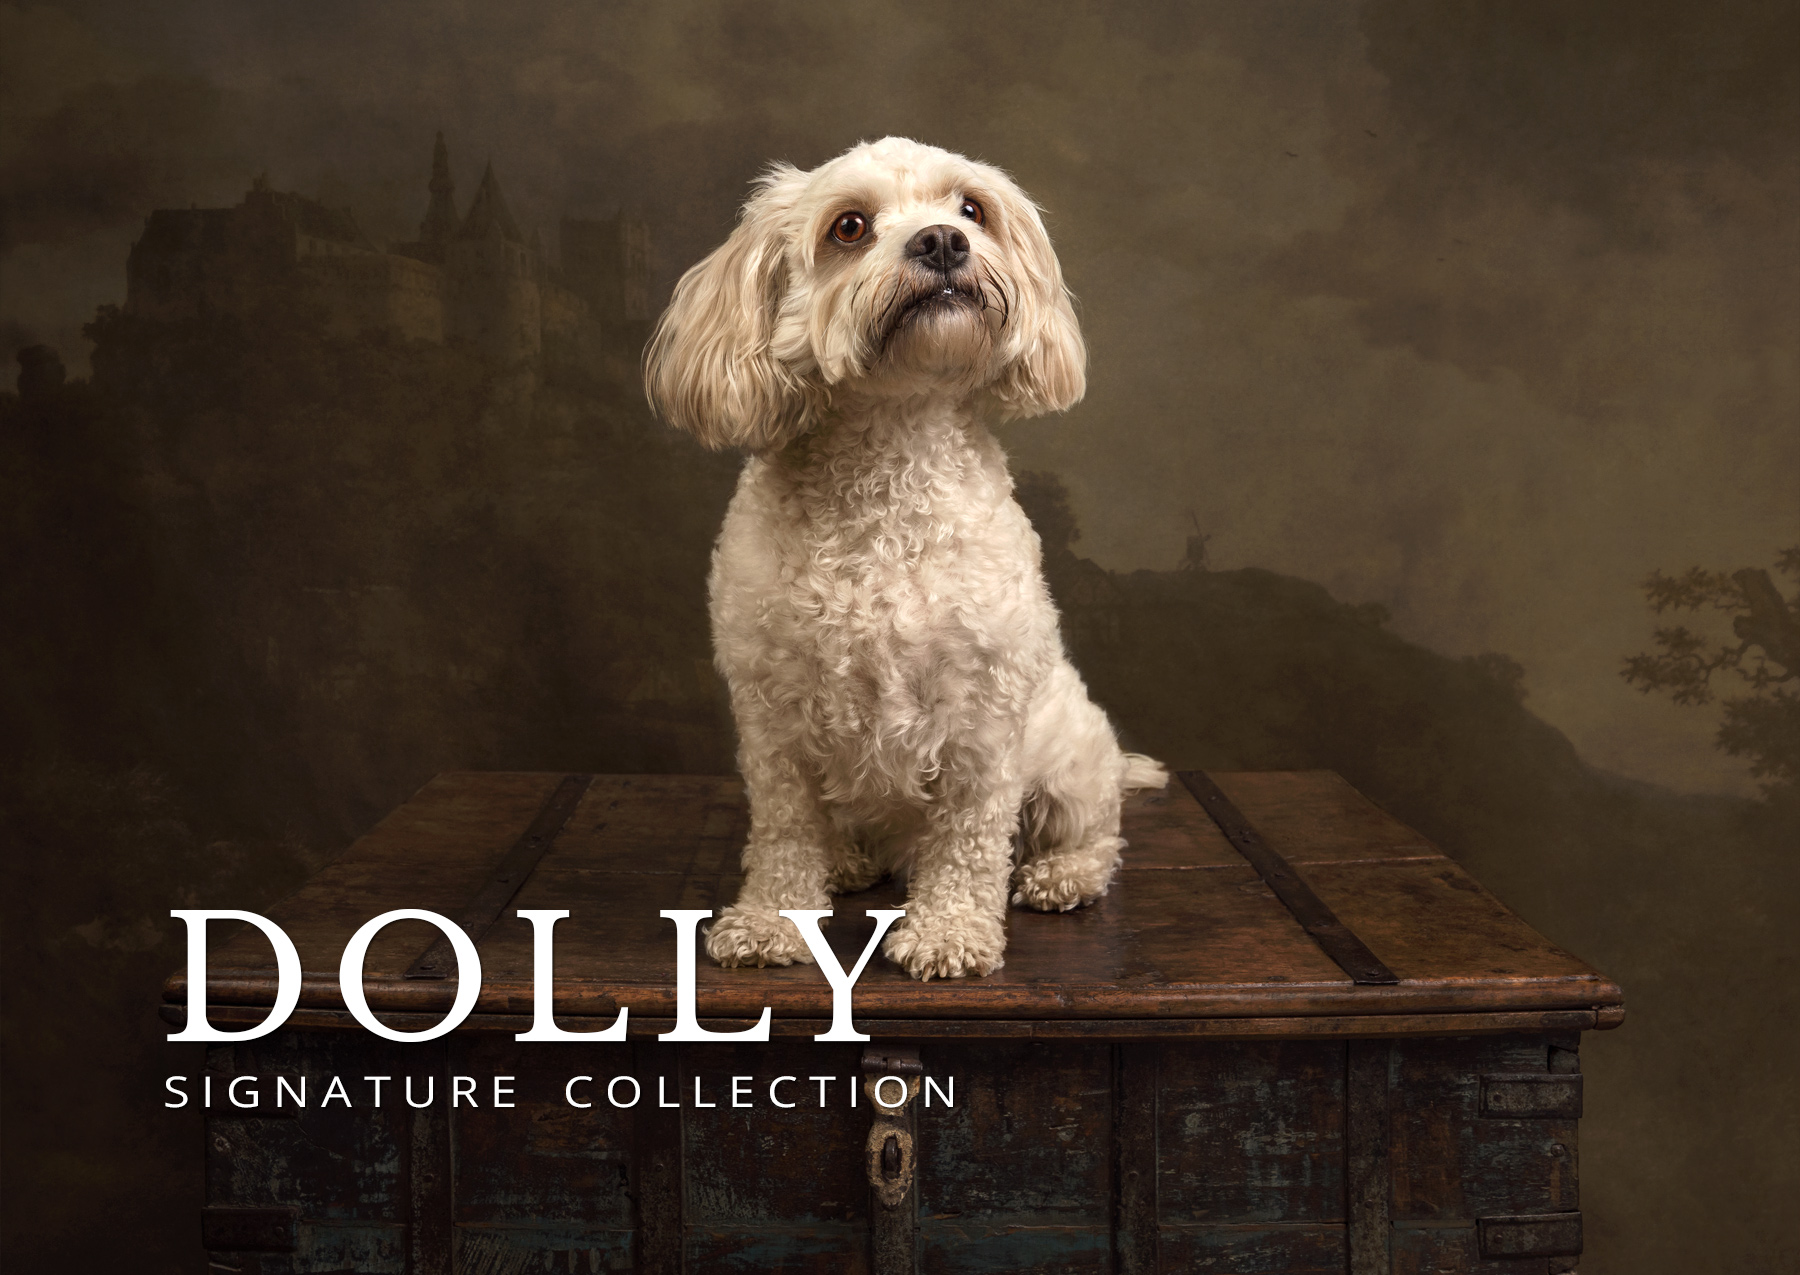 dolly before and after signature collection